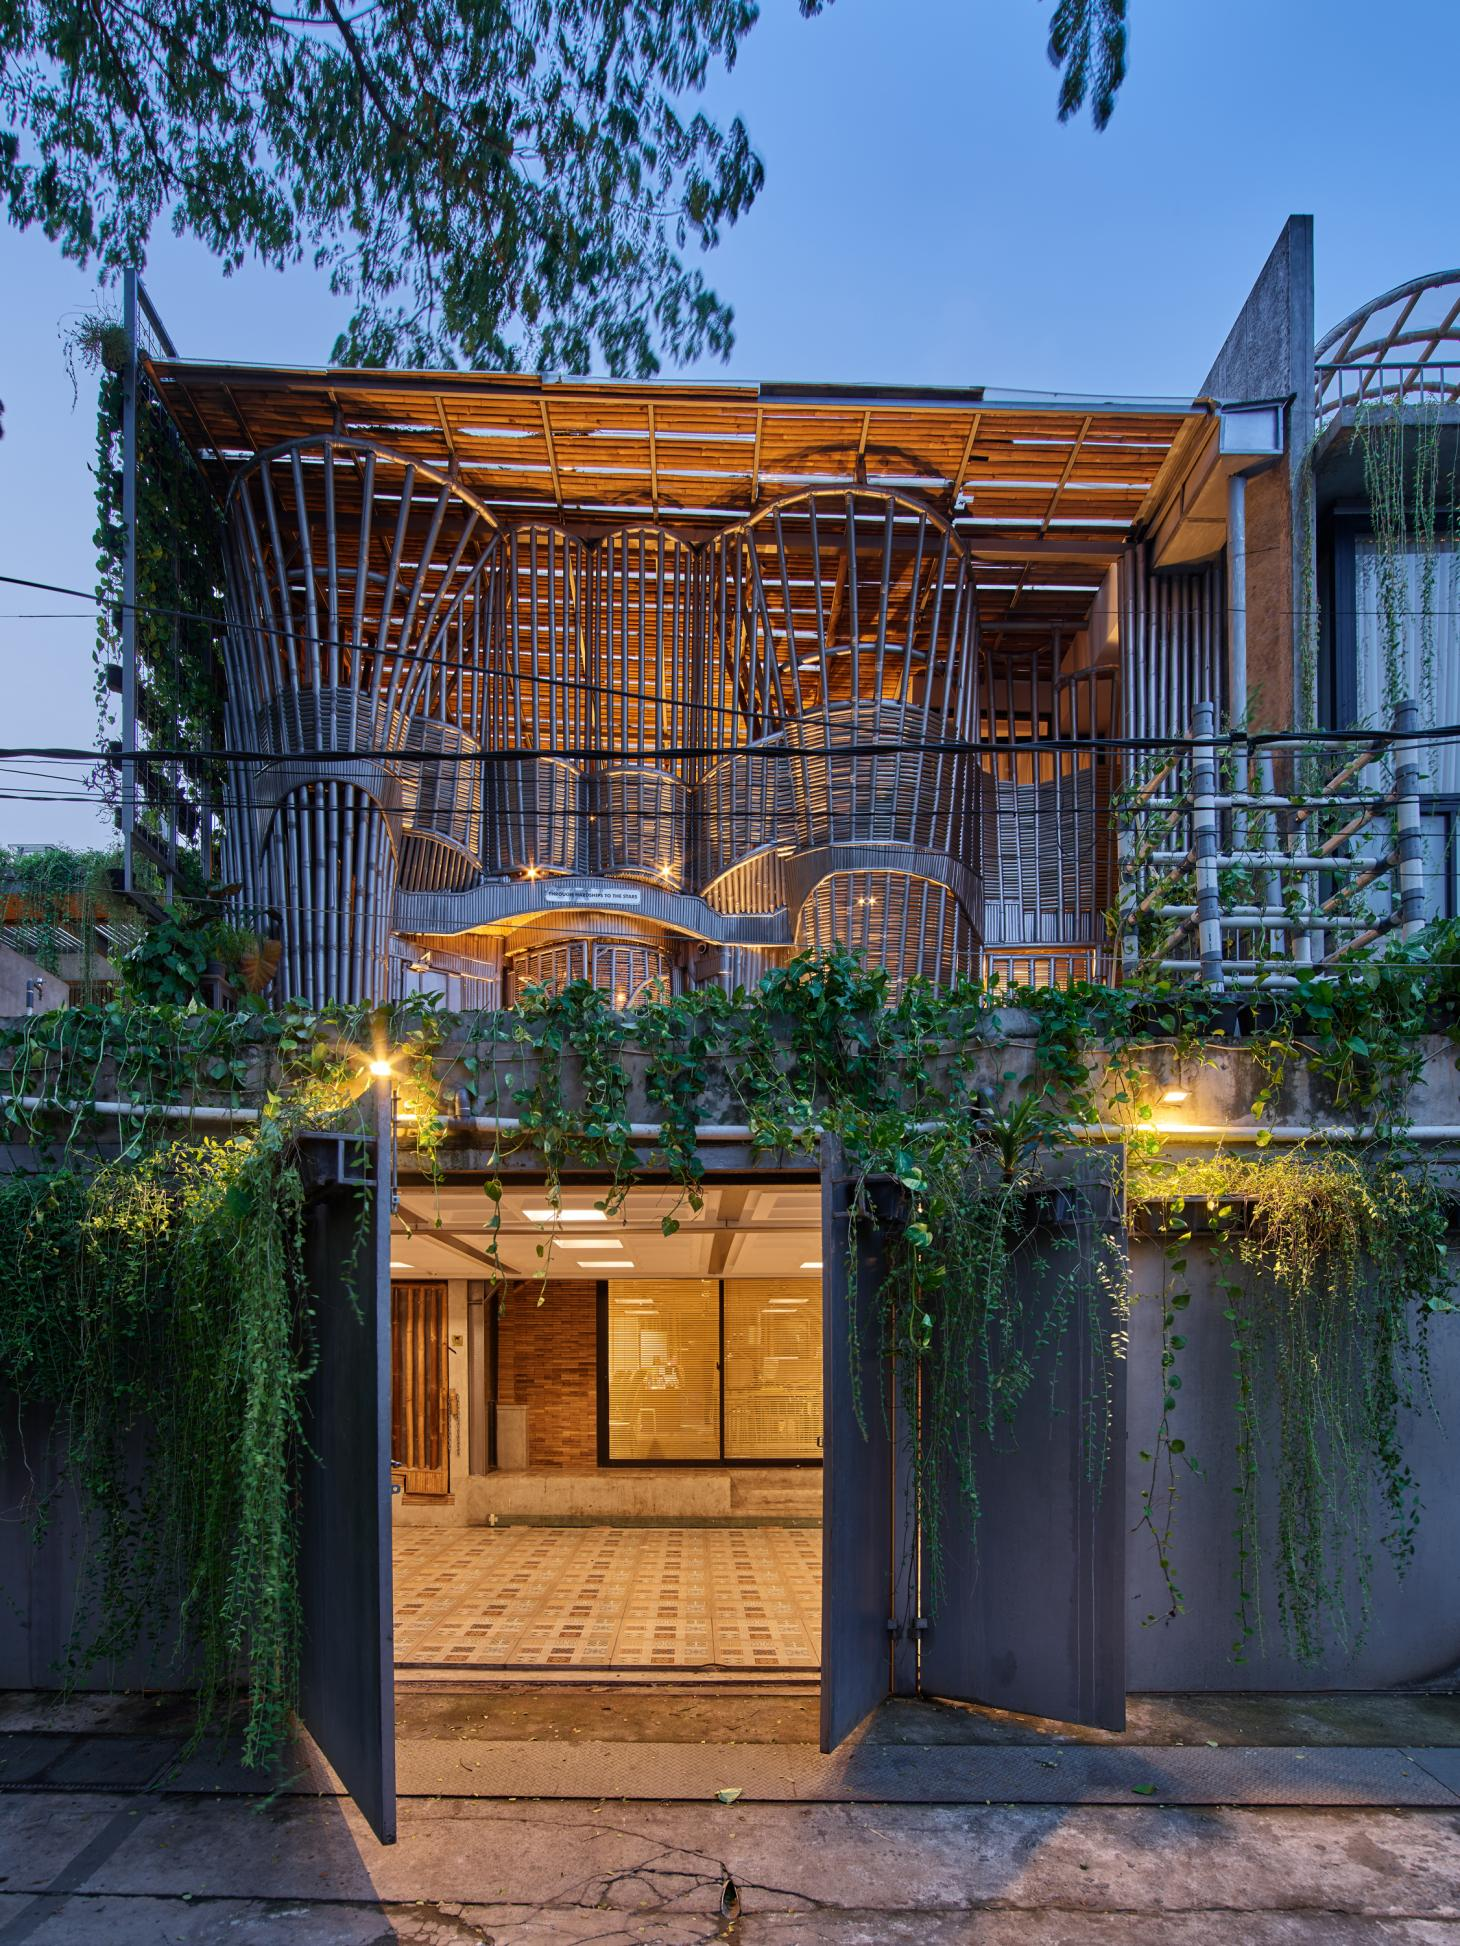 concrete, bamboo and nature mix at RAW architecture's live/work space, seen here the entrance